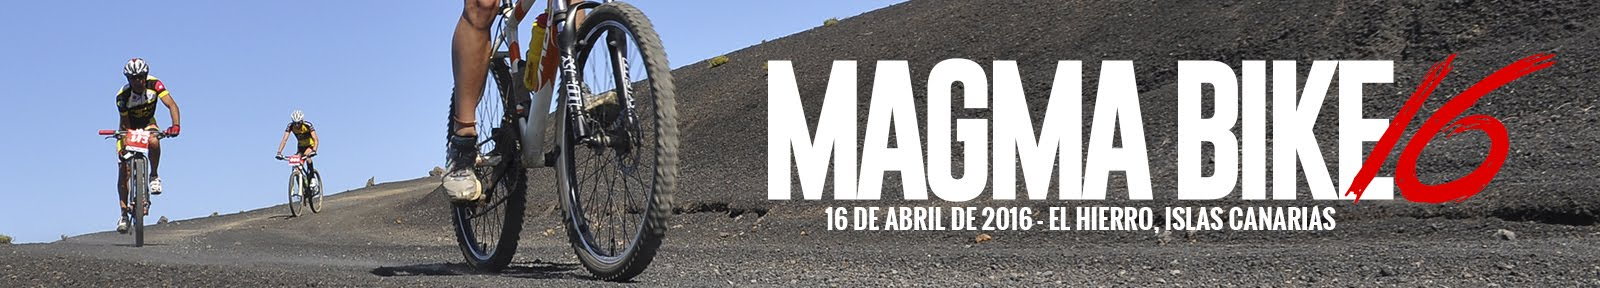 Magma Bike Maratón · Carrera de Mountain Bike (MTB) en Canarias